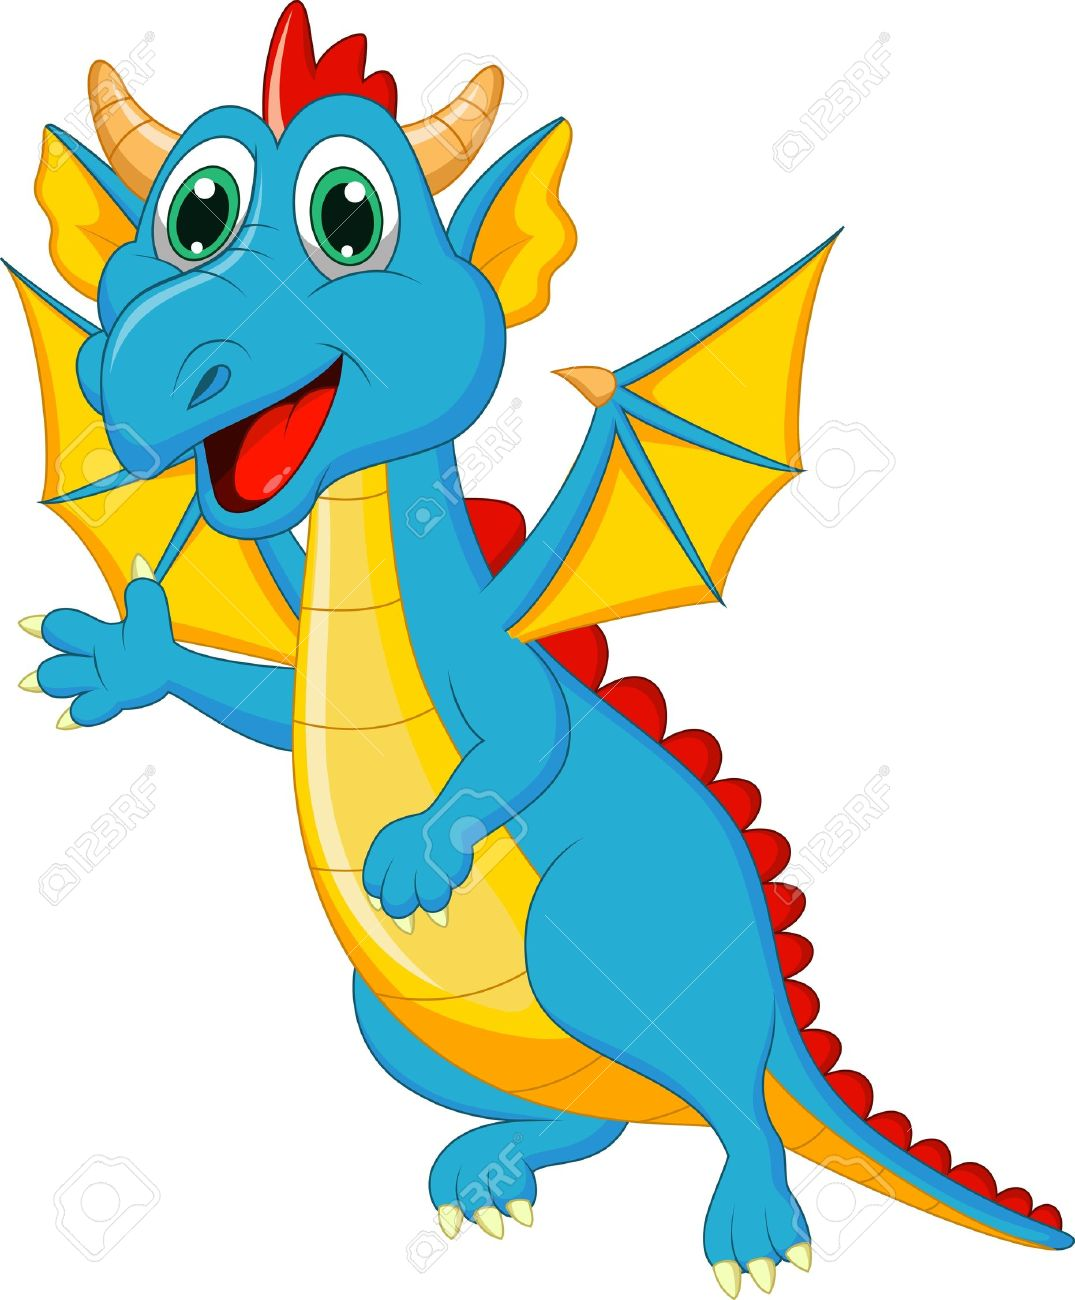 Blue Dragon clipart #3, Download drawings